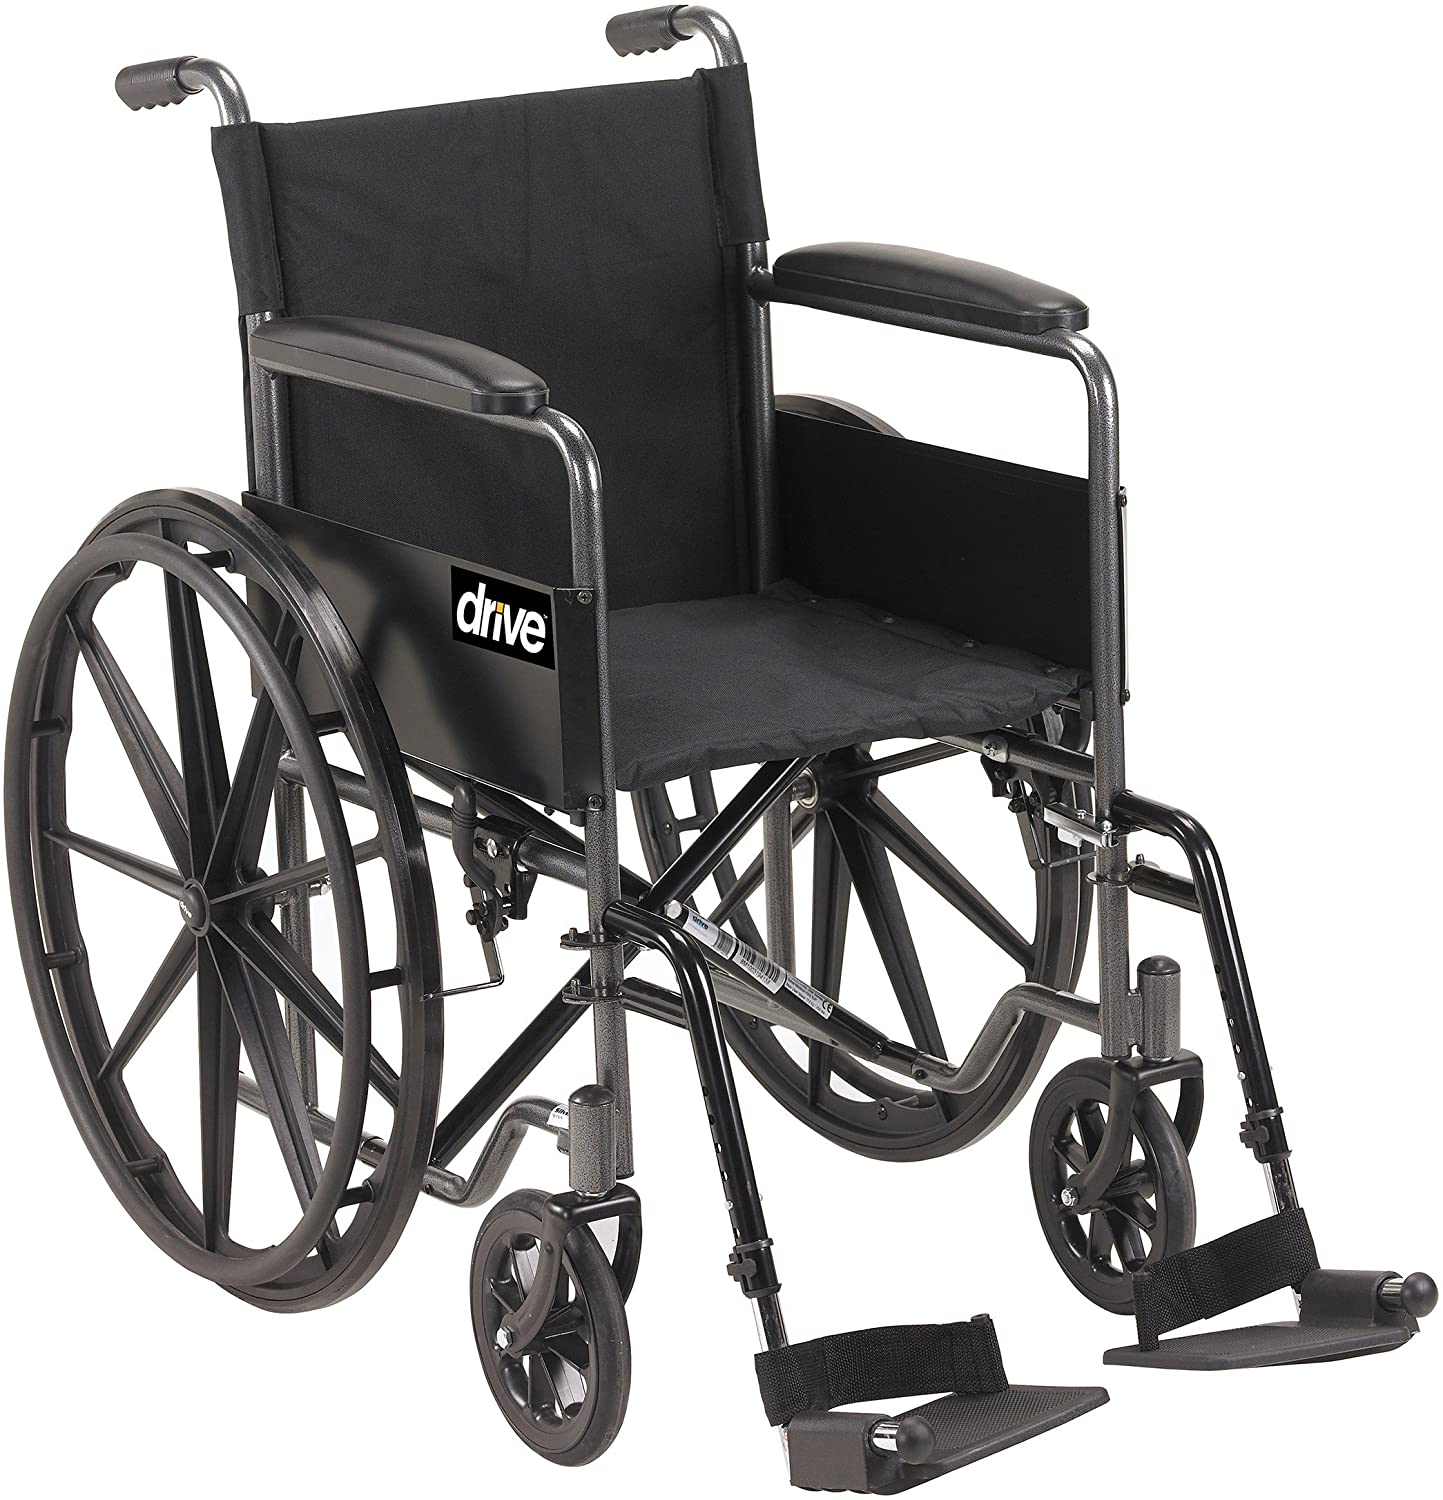 Drive Medical Silver Sport 1 Wheelchair with Full Arms and Swing Away Removable Footrest, Black 914e6mv6NvLSL1500_